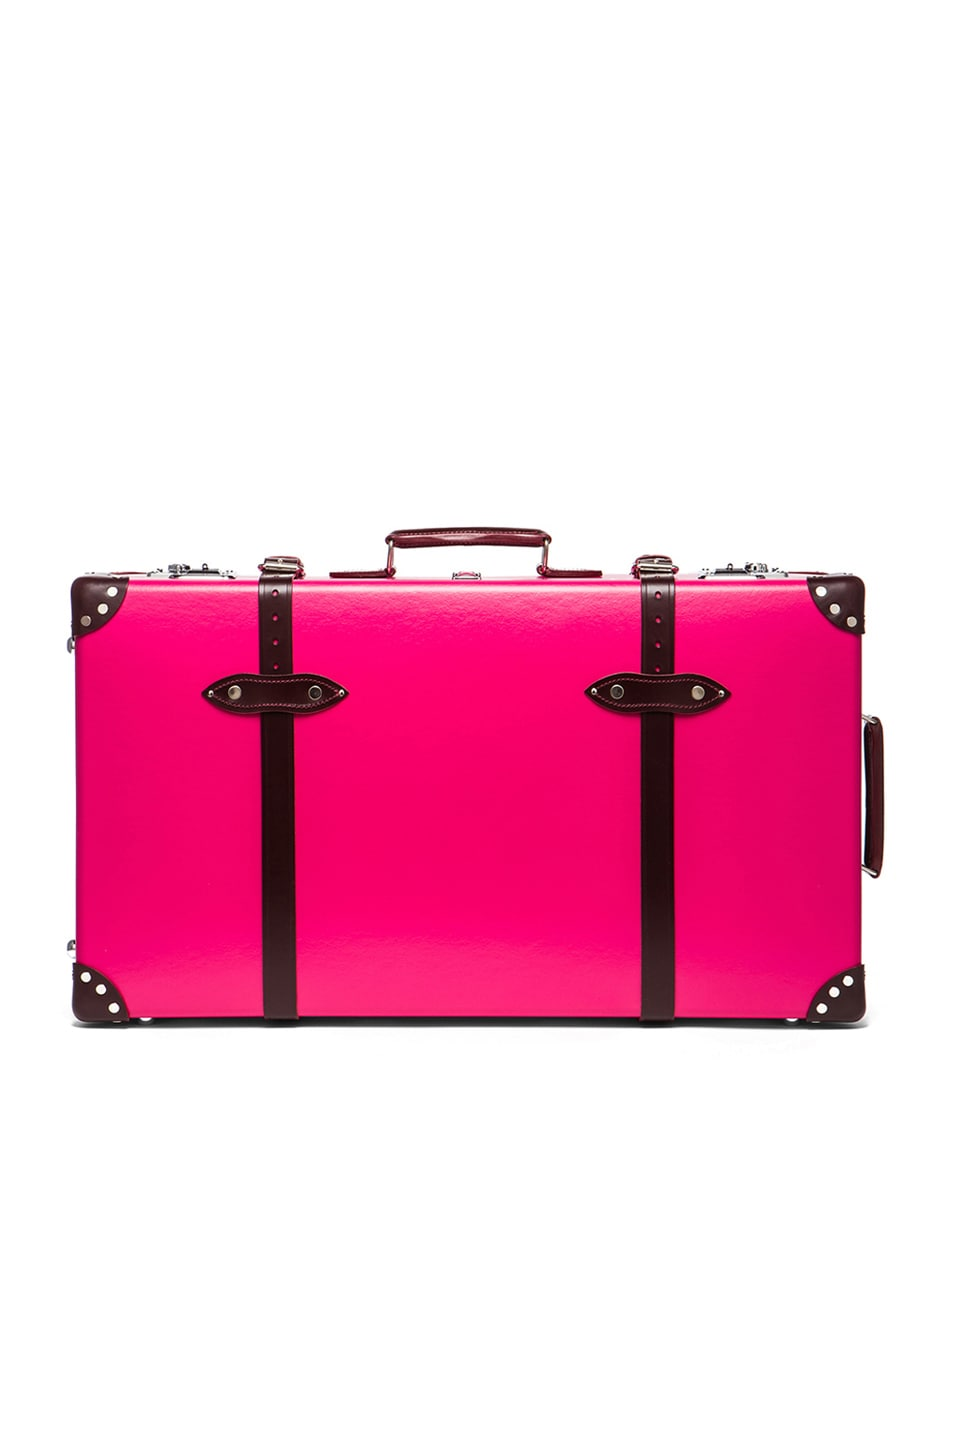 """Image 1 of Globe-Trotter 30"""" Limited Edition Candy Suitcase with Wheels in Hot Pink & Burgundy"""